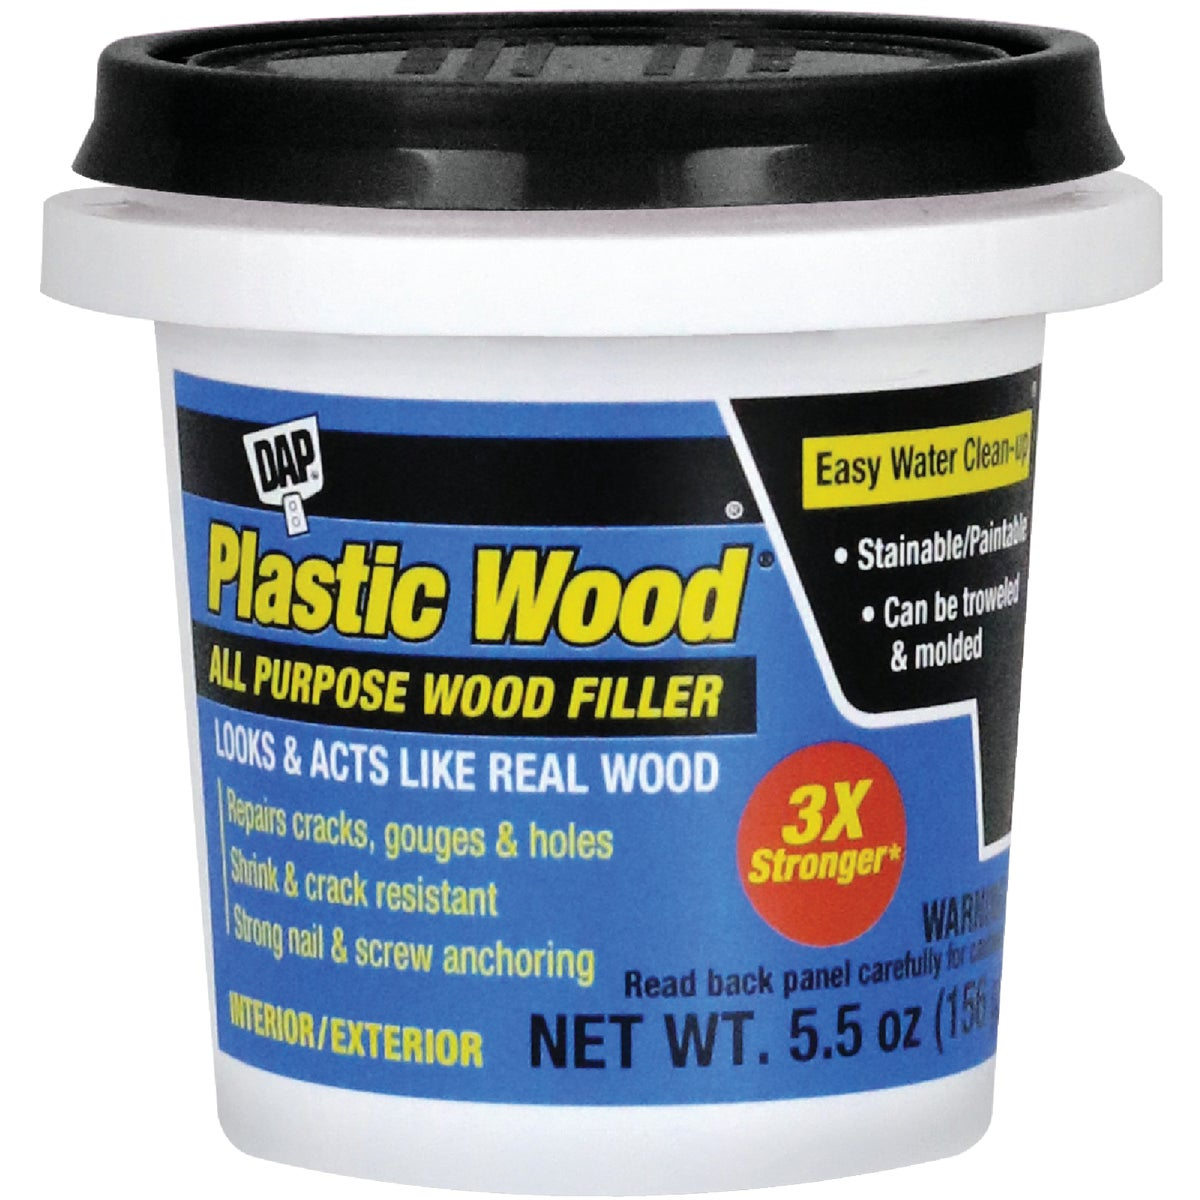 1/4PT LATEX PLASTIC WOOD - 08111 by Dap Inc